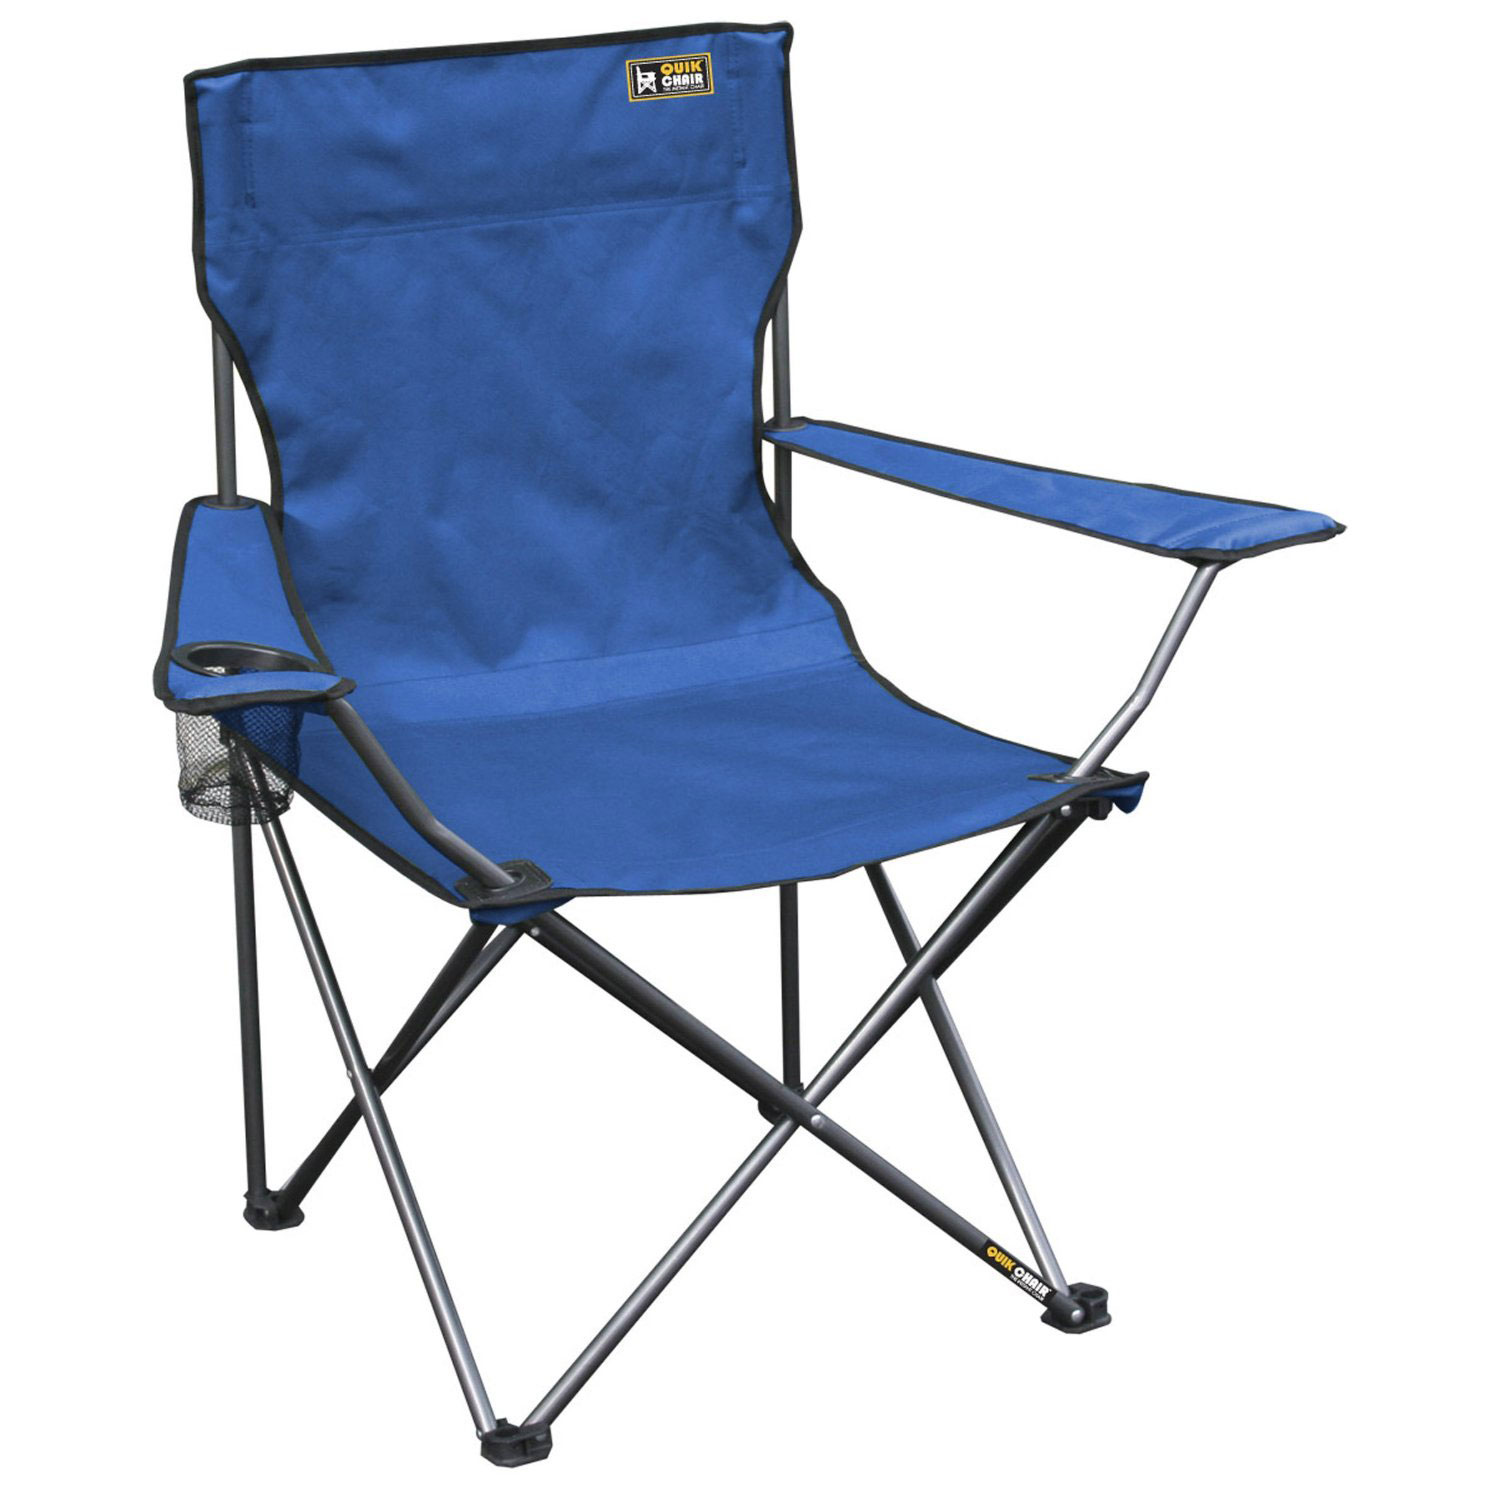 Quik Chair Folding Camping Chair With Carrying Bag